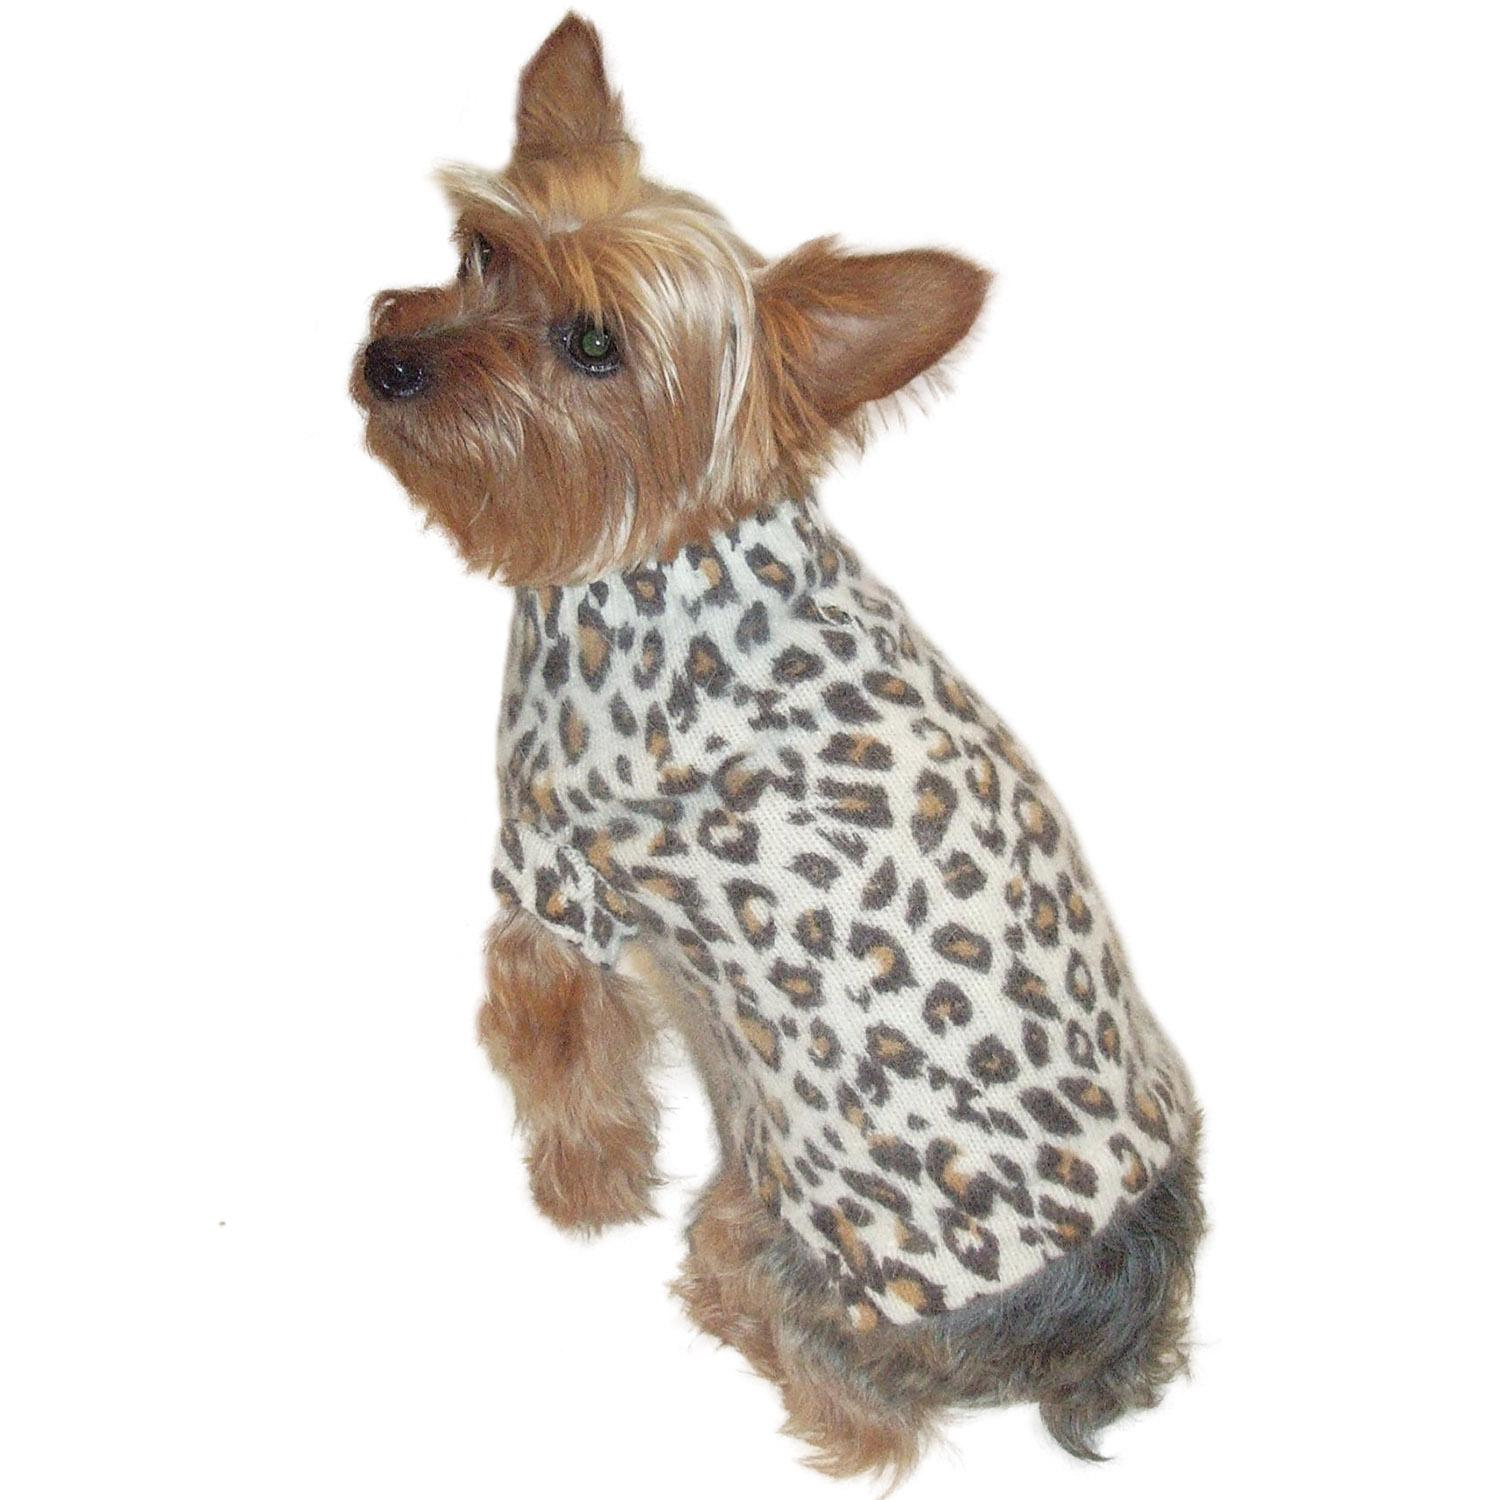 Animal Instincts Luxury Mock Turtleneck Dog Sweater by The Dog Squad - Snow Leopard